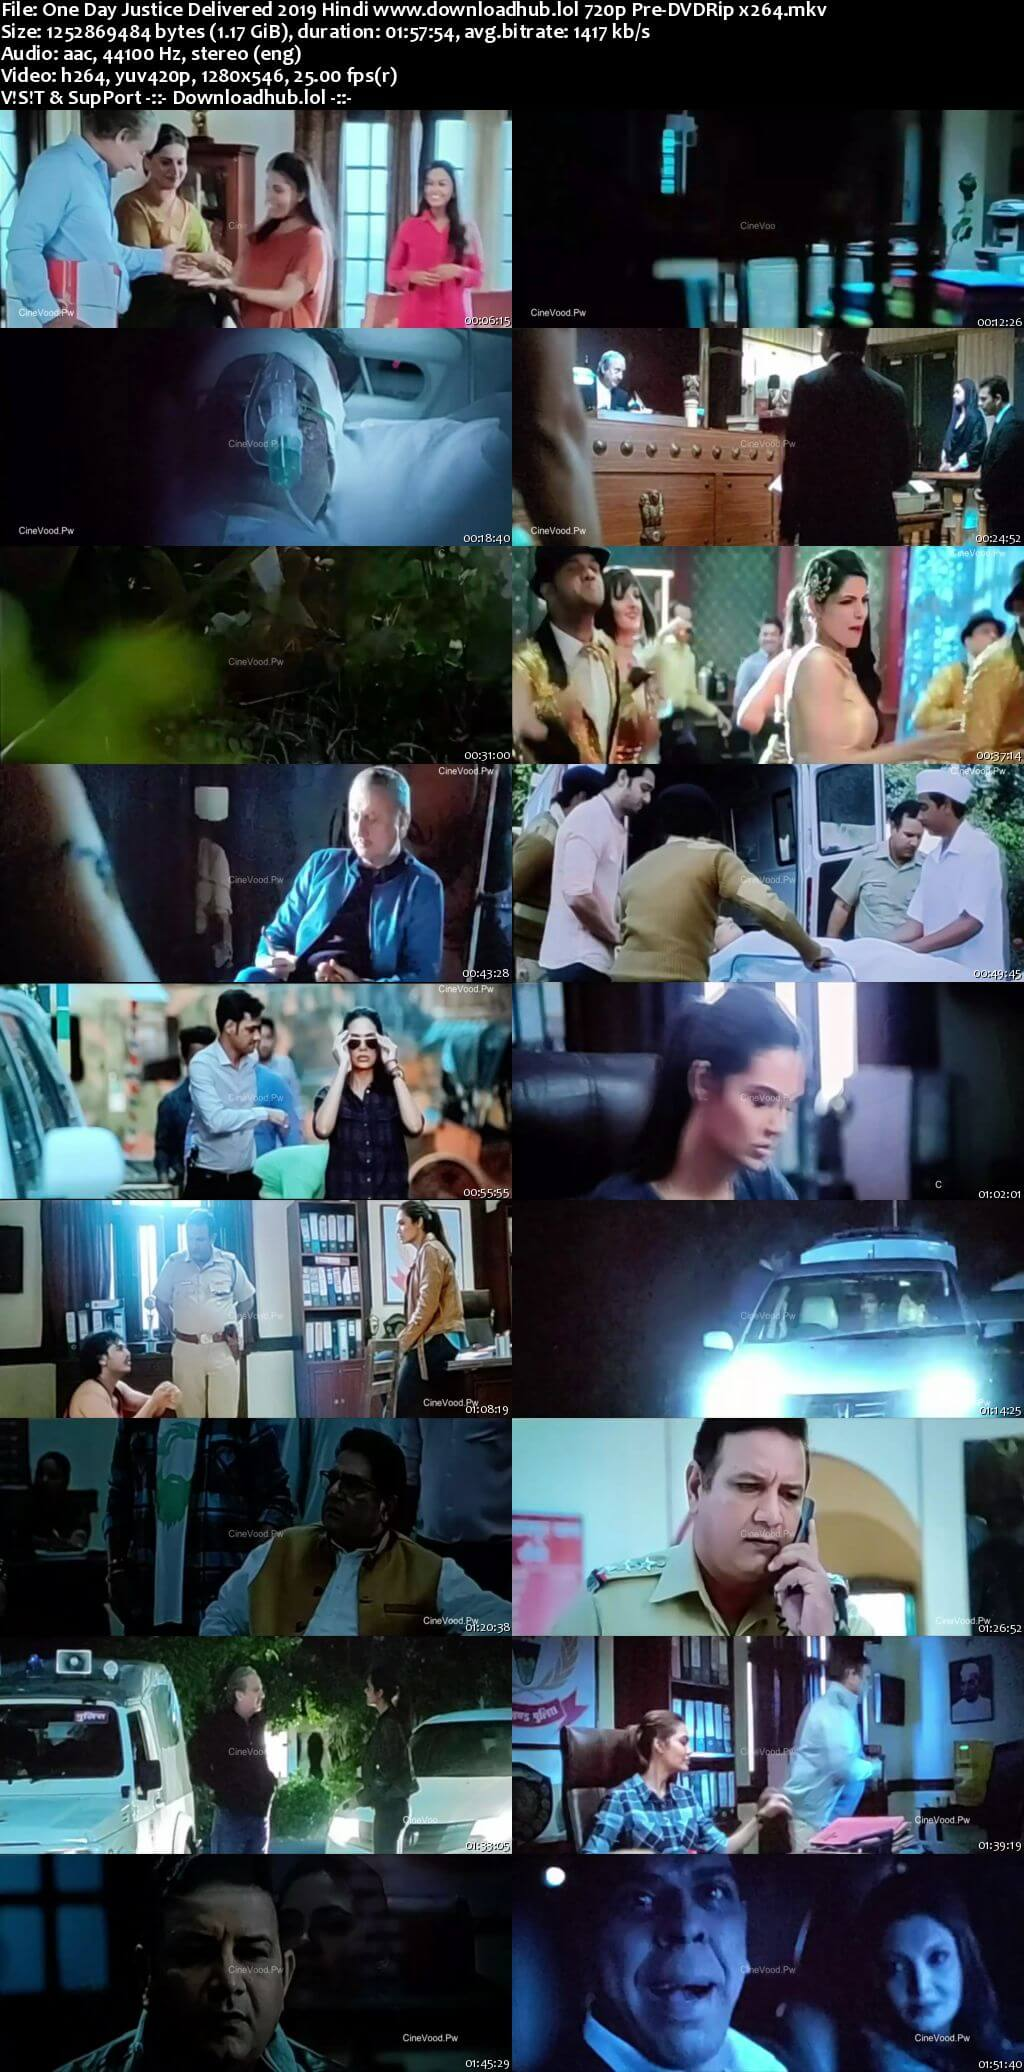 One Day Justice Delivered 2019 Hindi 720p Pre-DVDRip x264